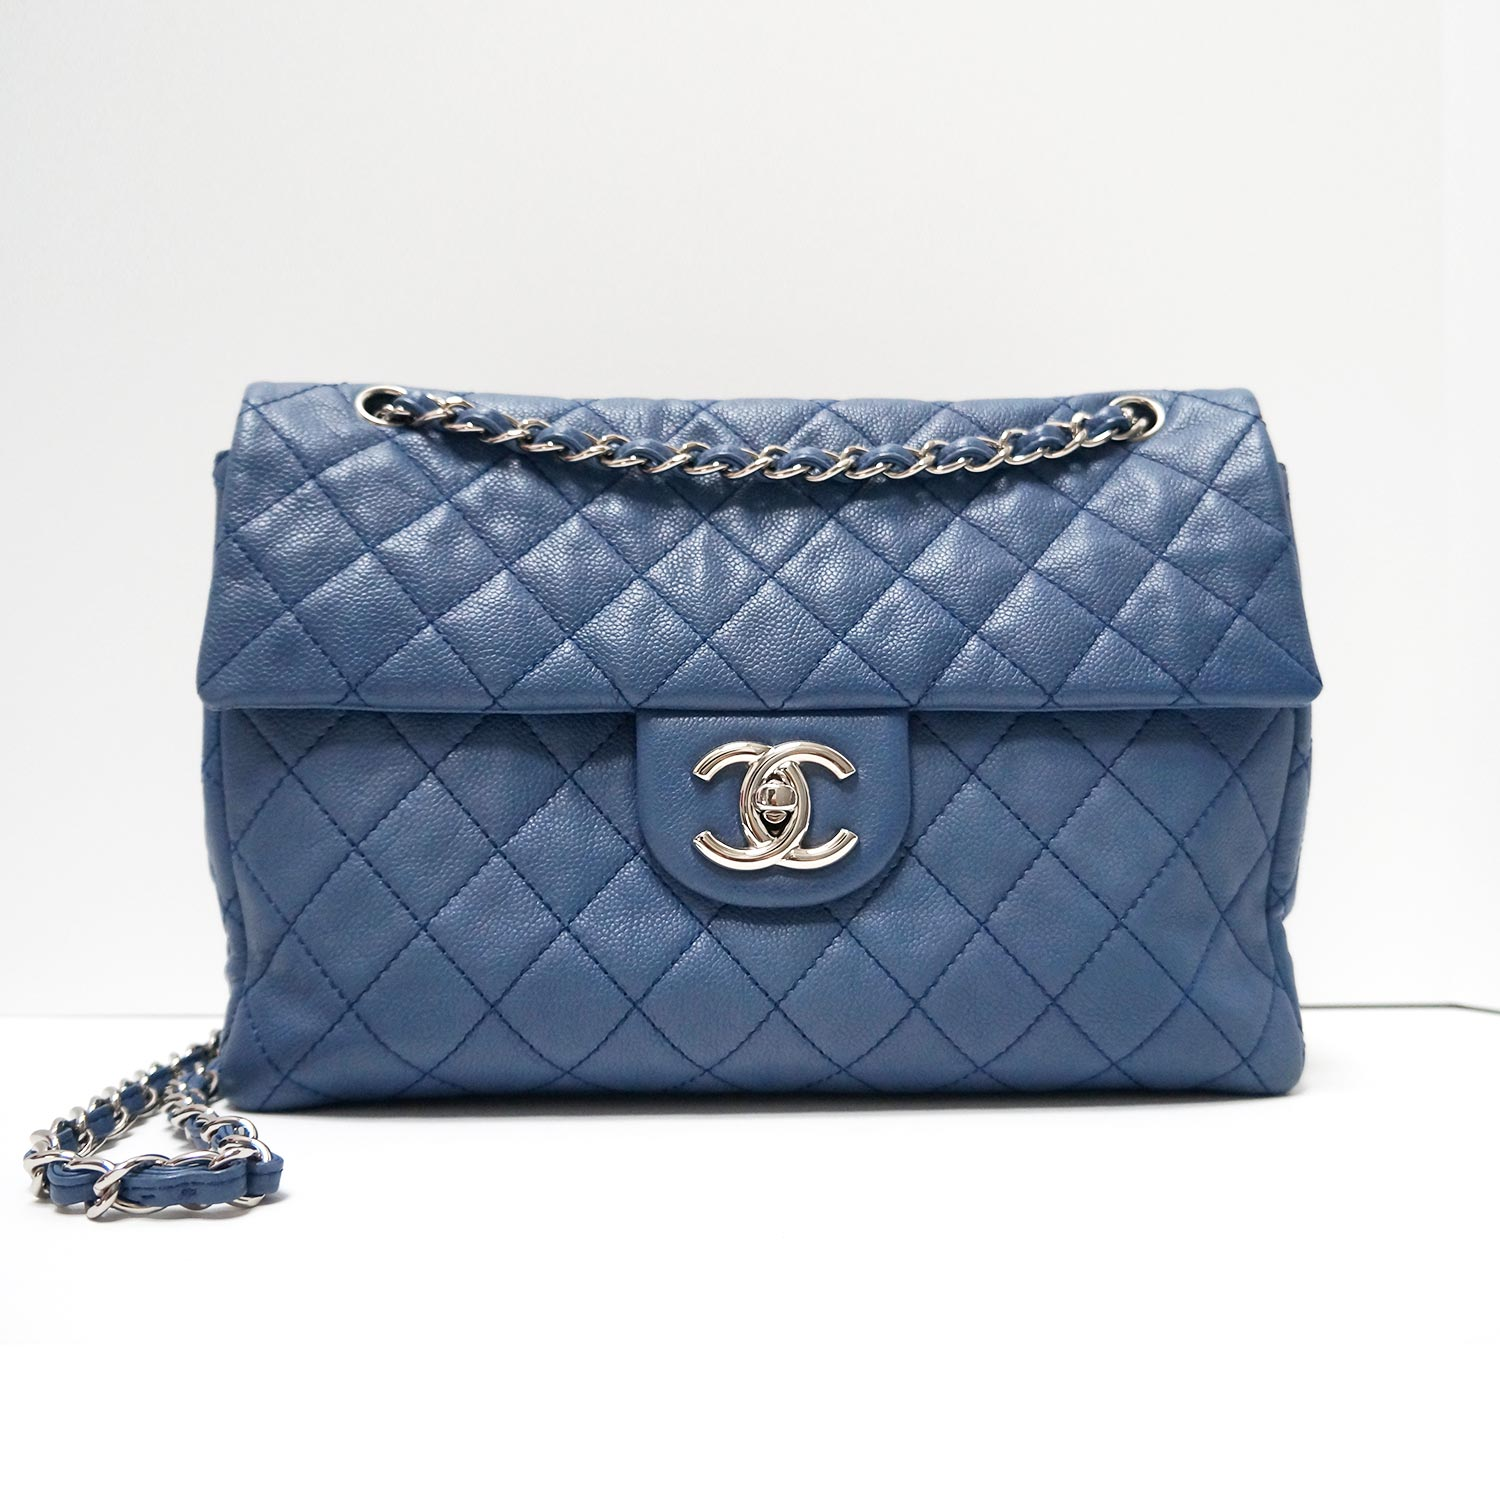 0ec83d9a8e45 Chanel Blue Jean Washed Caviar Soft Body Leather Maxi Flap Bag ...